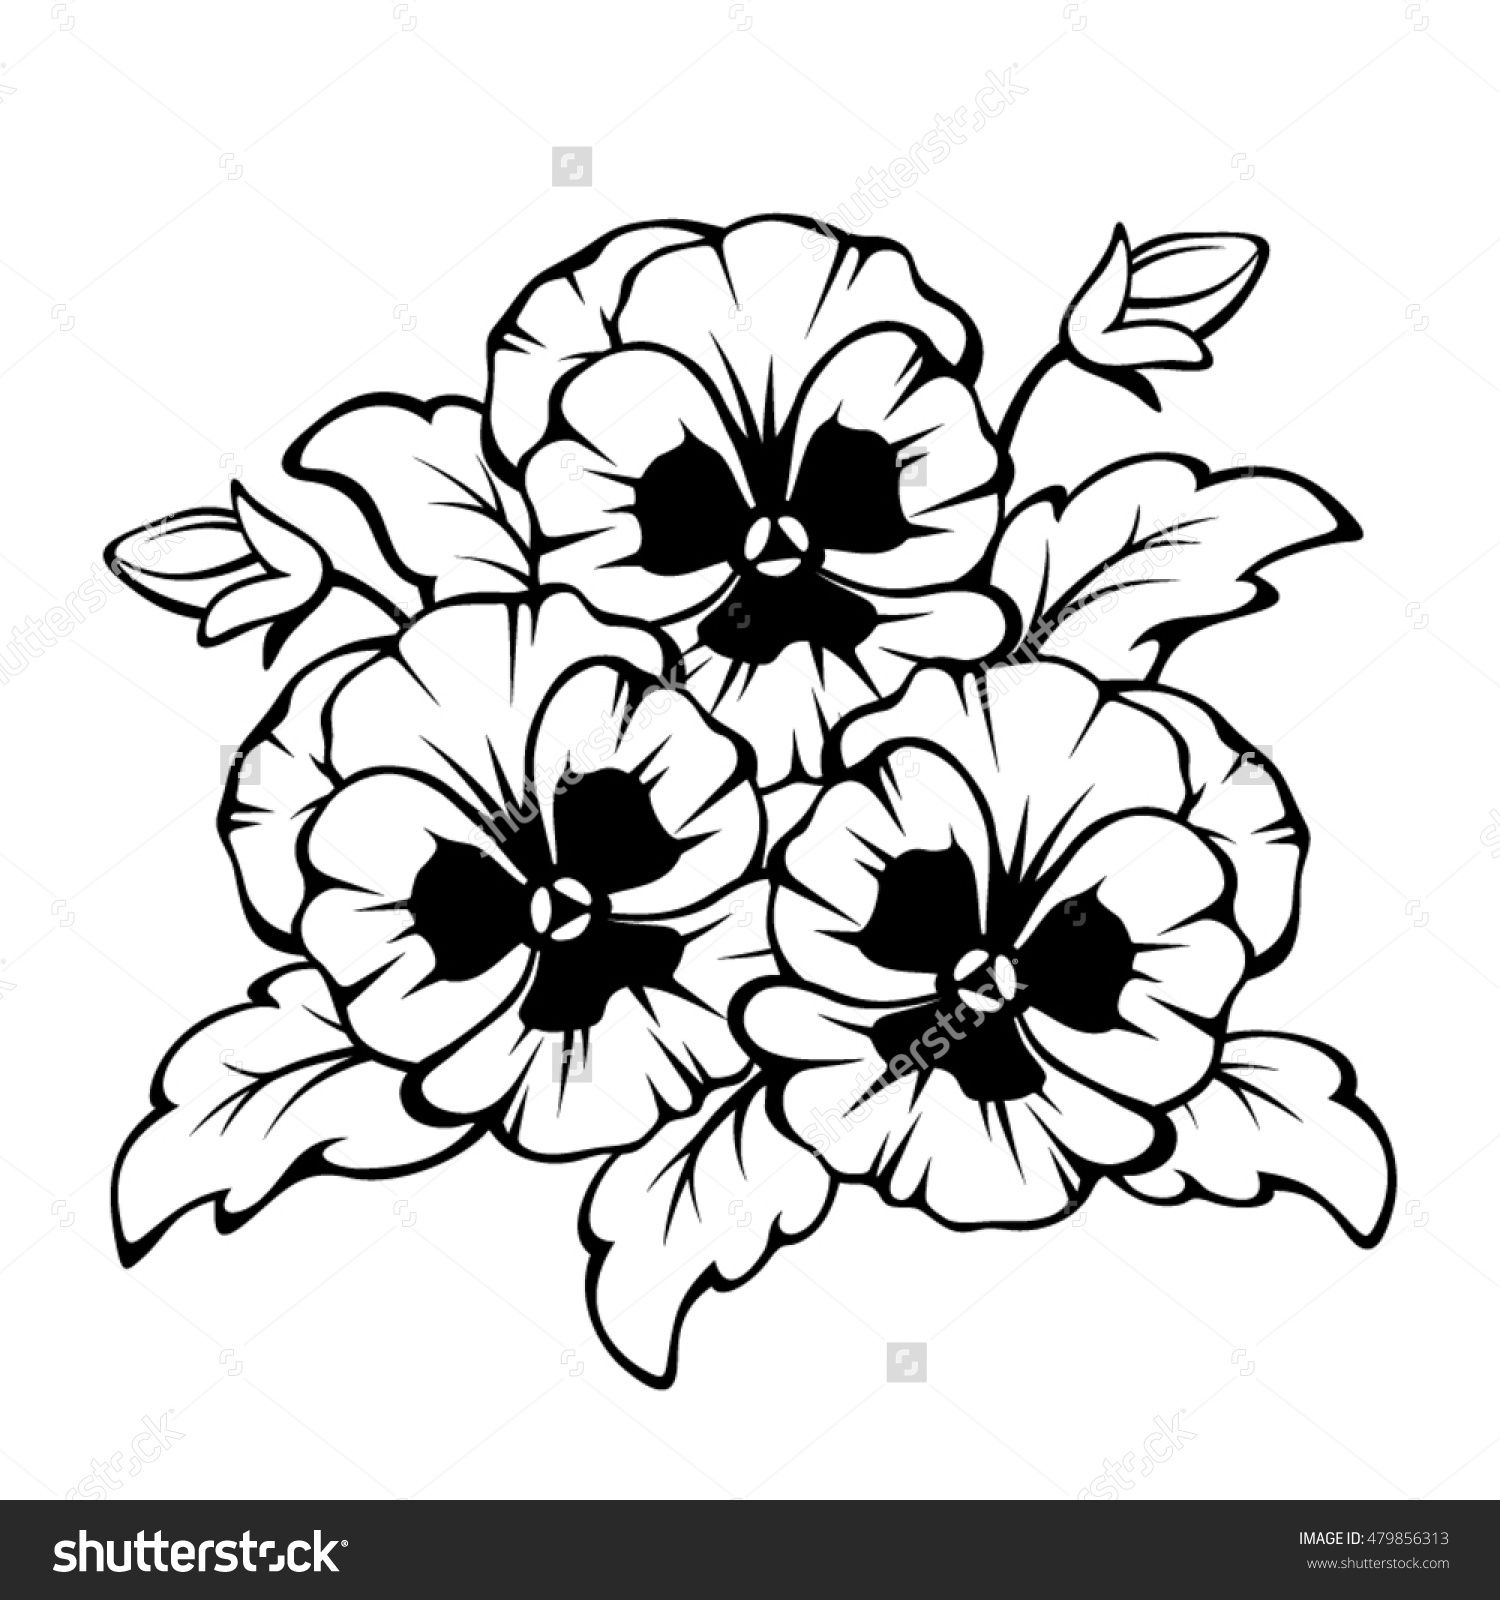 Vector Black Contour Of Pansy Flowers Isolated On A White Background Flower Pattern Drawing Flower Drawing Flower Clipart